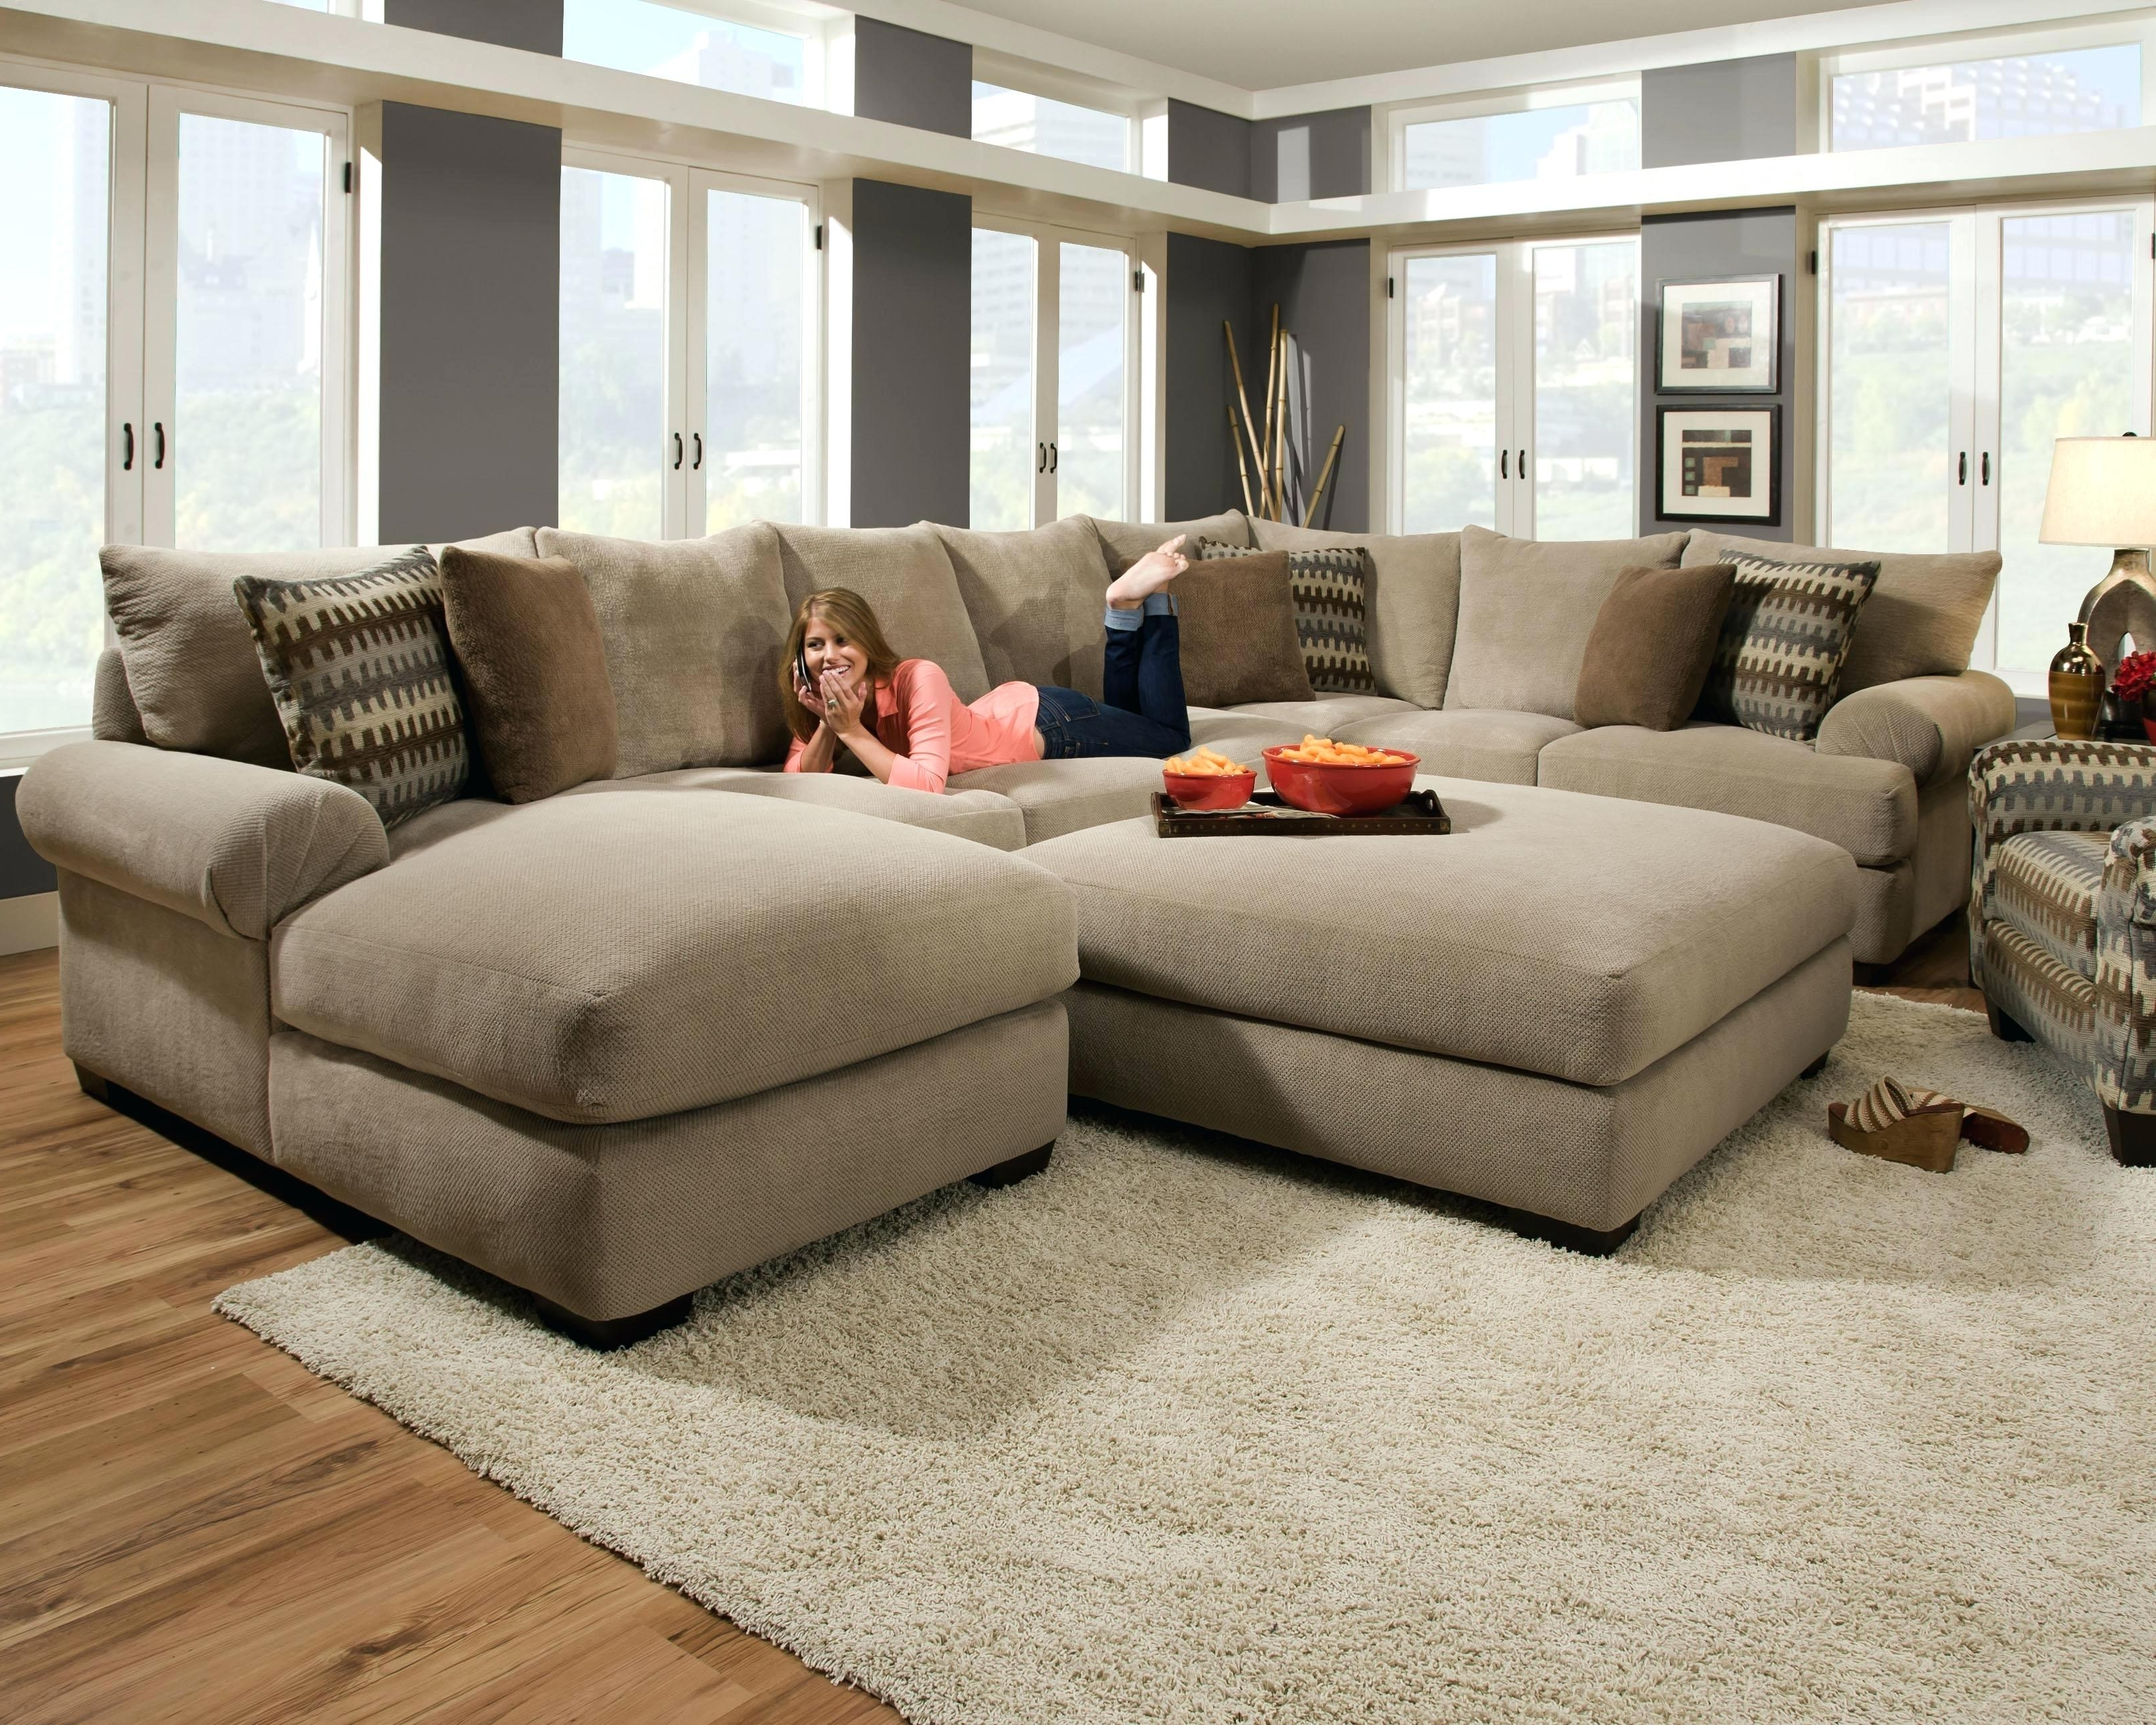 Sofa : Sofa Pit Pizza Pet Furniture Cover Pitsectional Groups Pertaining To 2017 Pittsburgh Sectional Sofas (View 12 of 15)